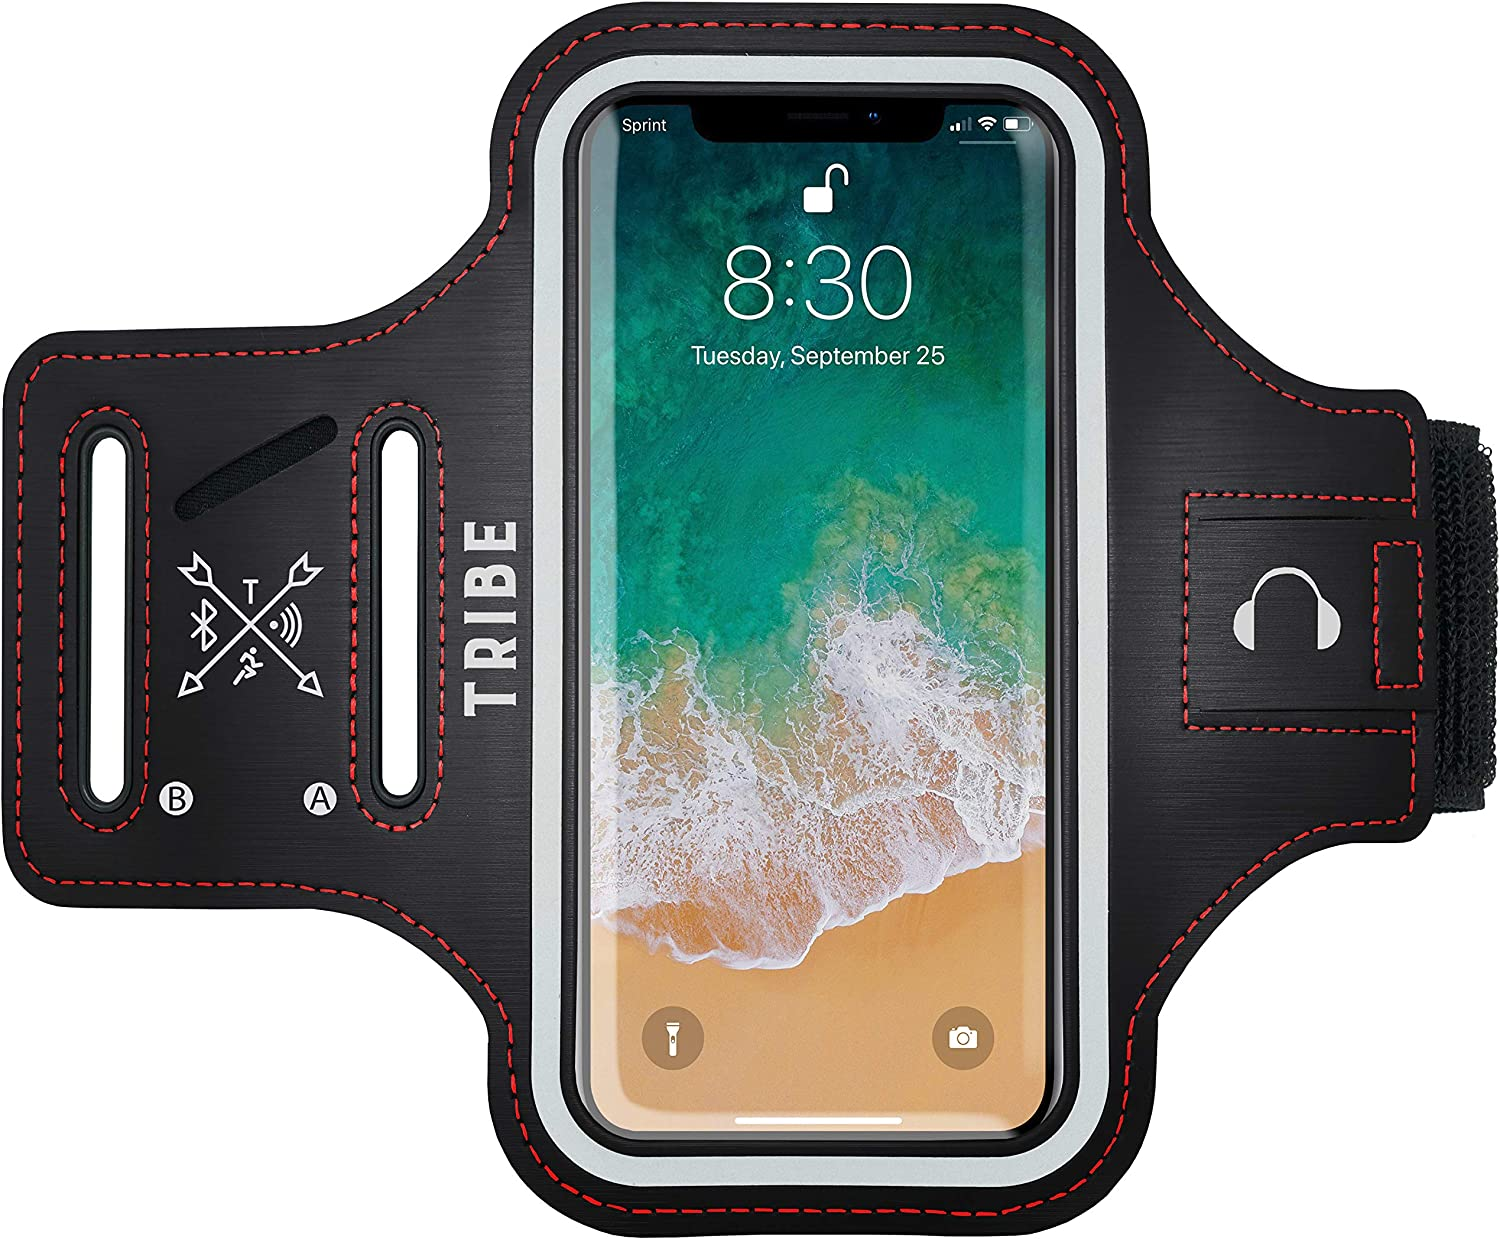 TRIBE Reflective Running Phone Holder Sports Armband. iPhone Cell Phone Arm Band for Women & Men. Runners, Jogging, Exercise, Walking & Gym Workout. Cell Case for iPhones, Galaxy and All Other Phones!